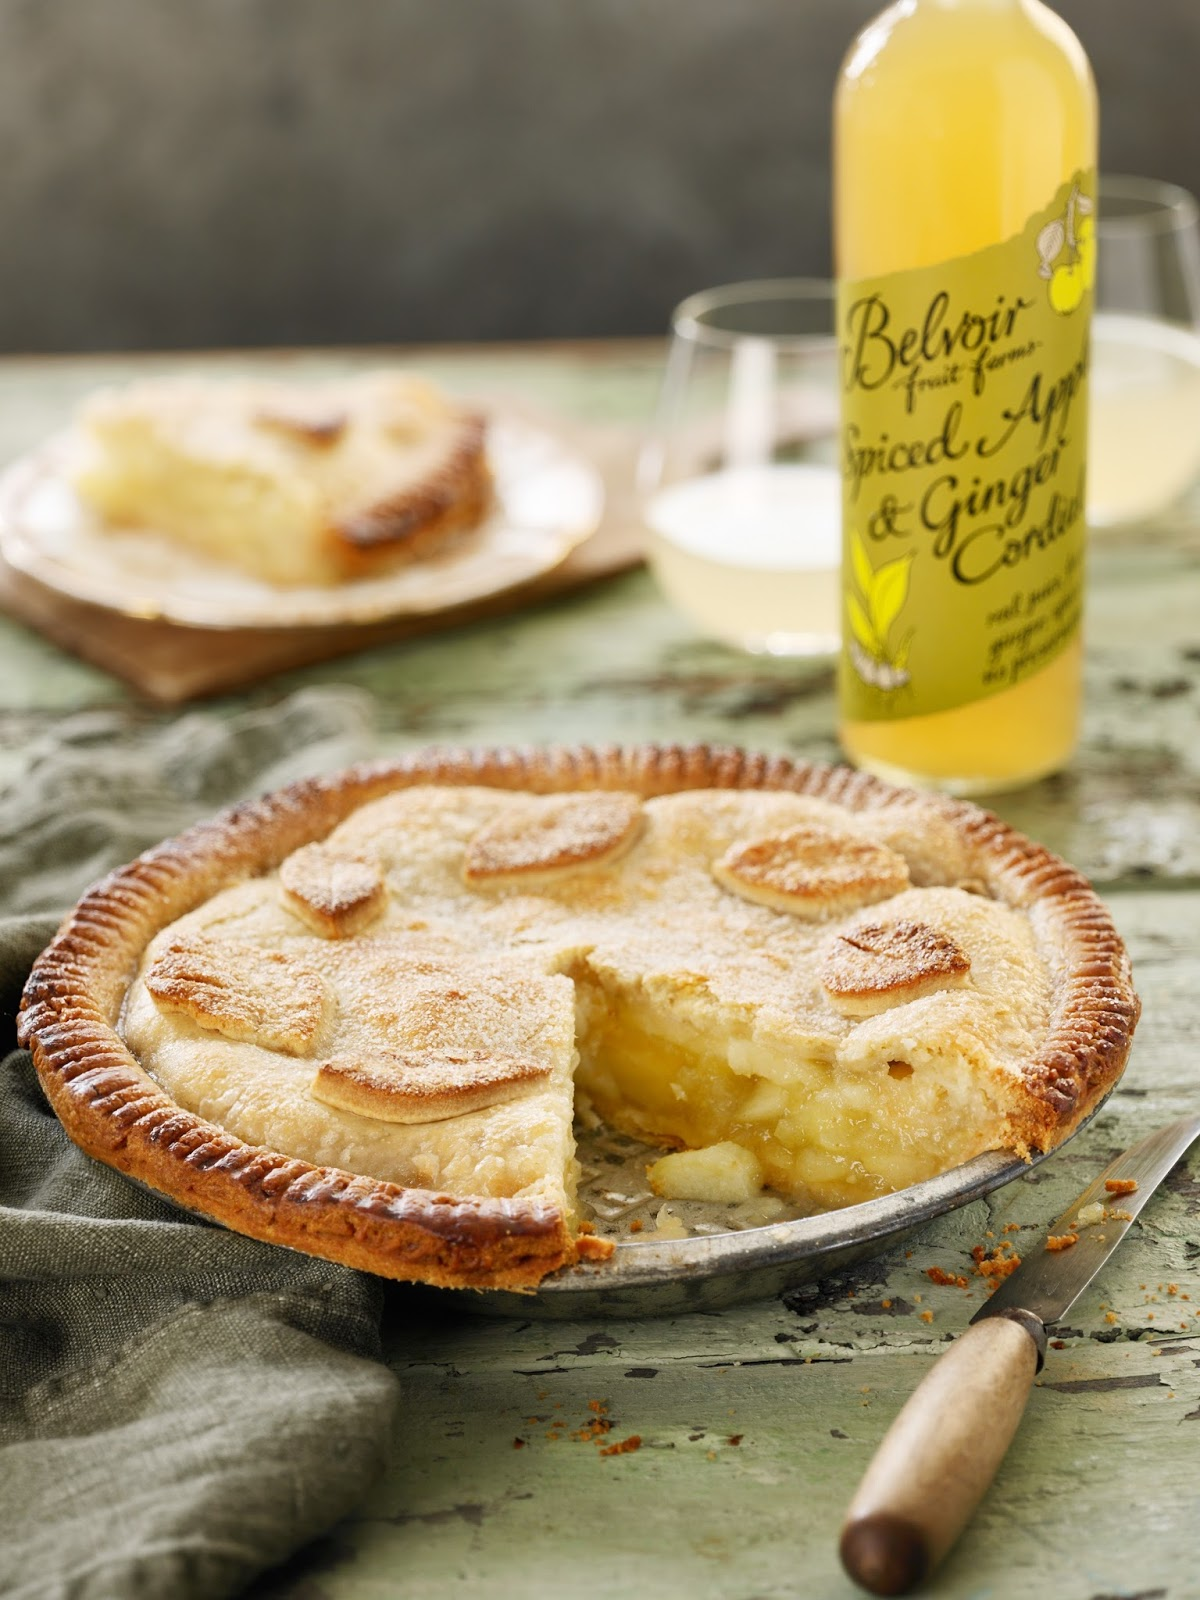 14 Sweet And Savoury Pie Recipes For #NationalPieDay